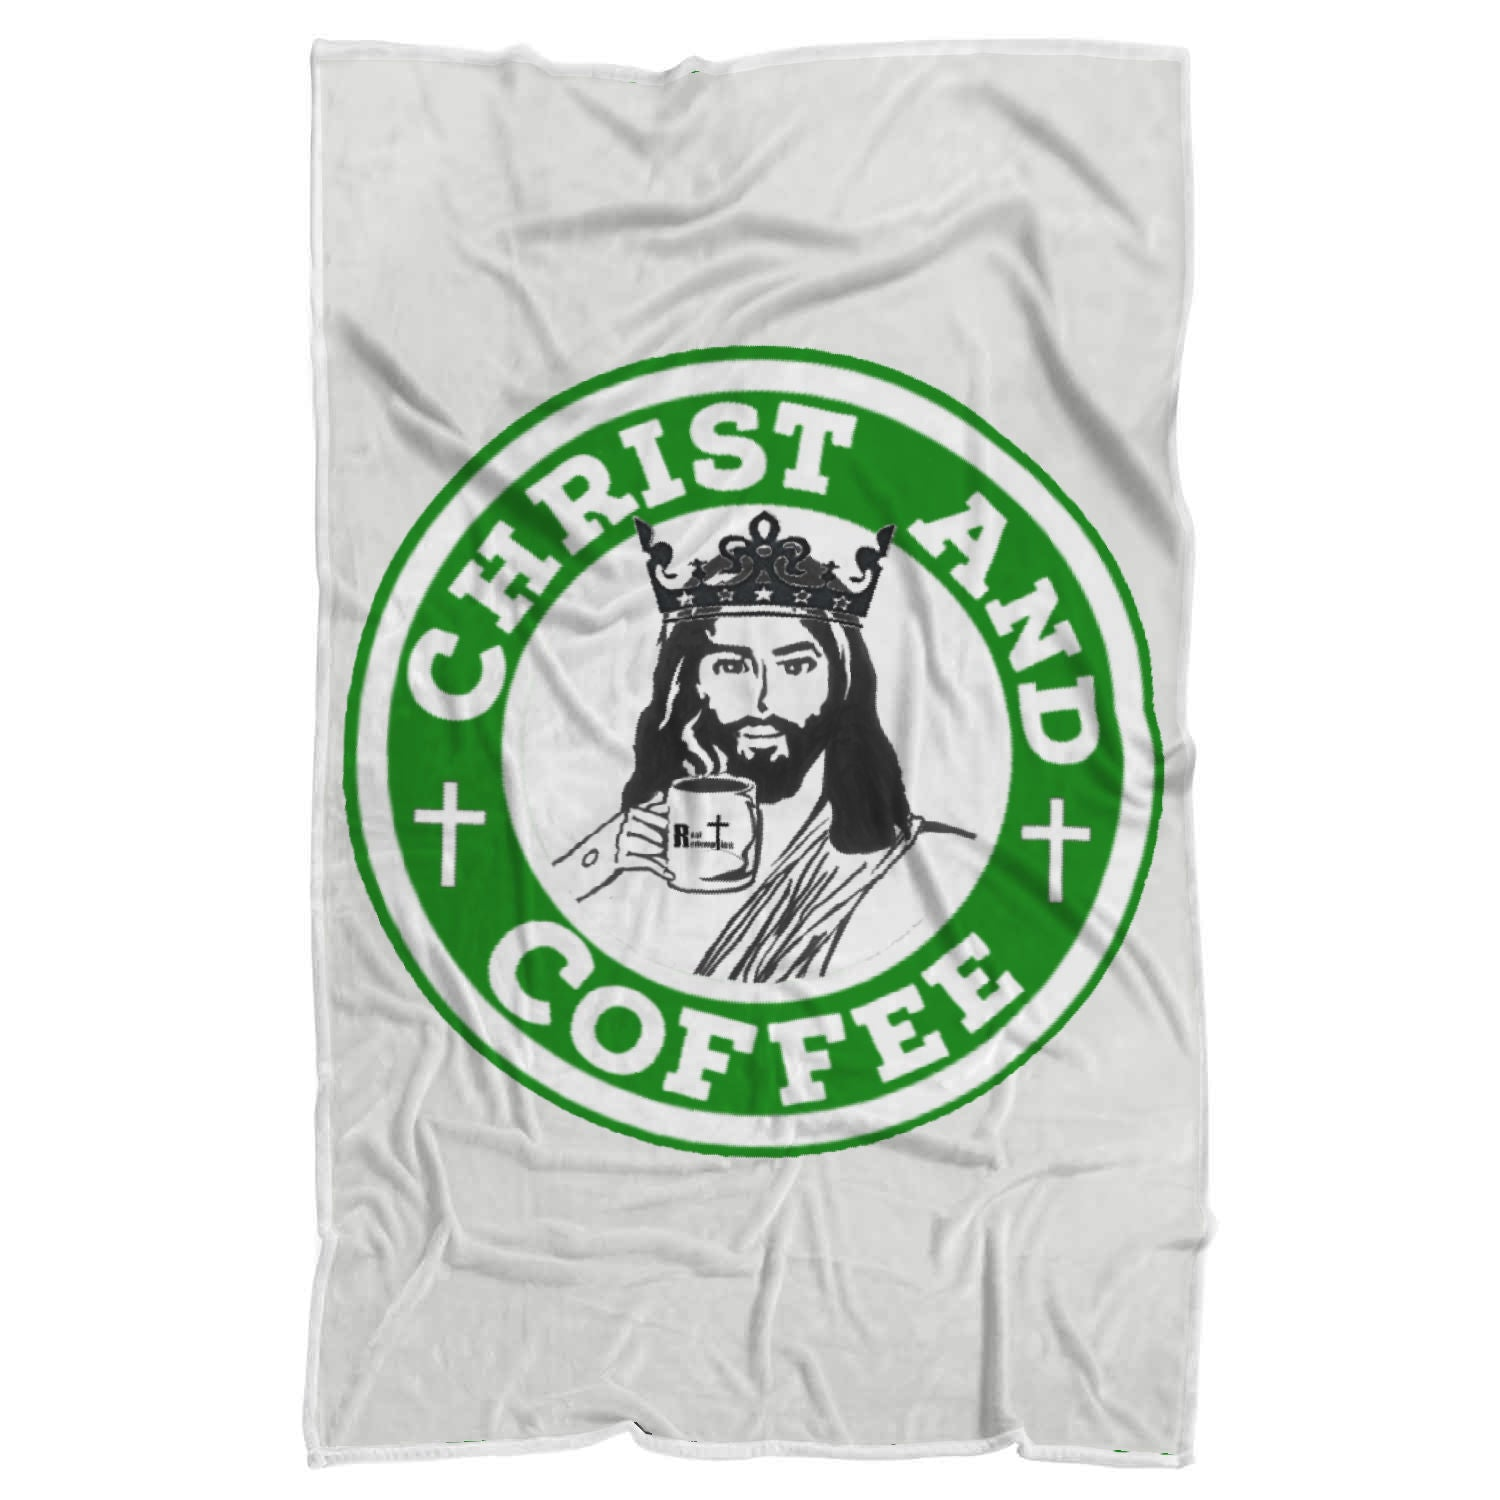 Christ and Coffee Sherpa Blanket